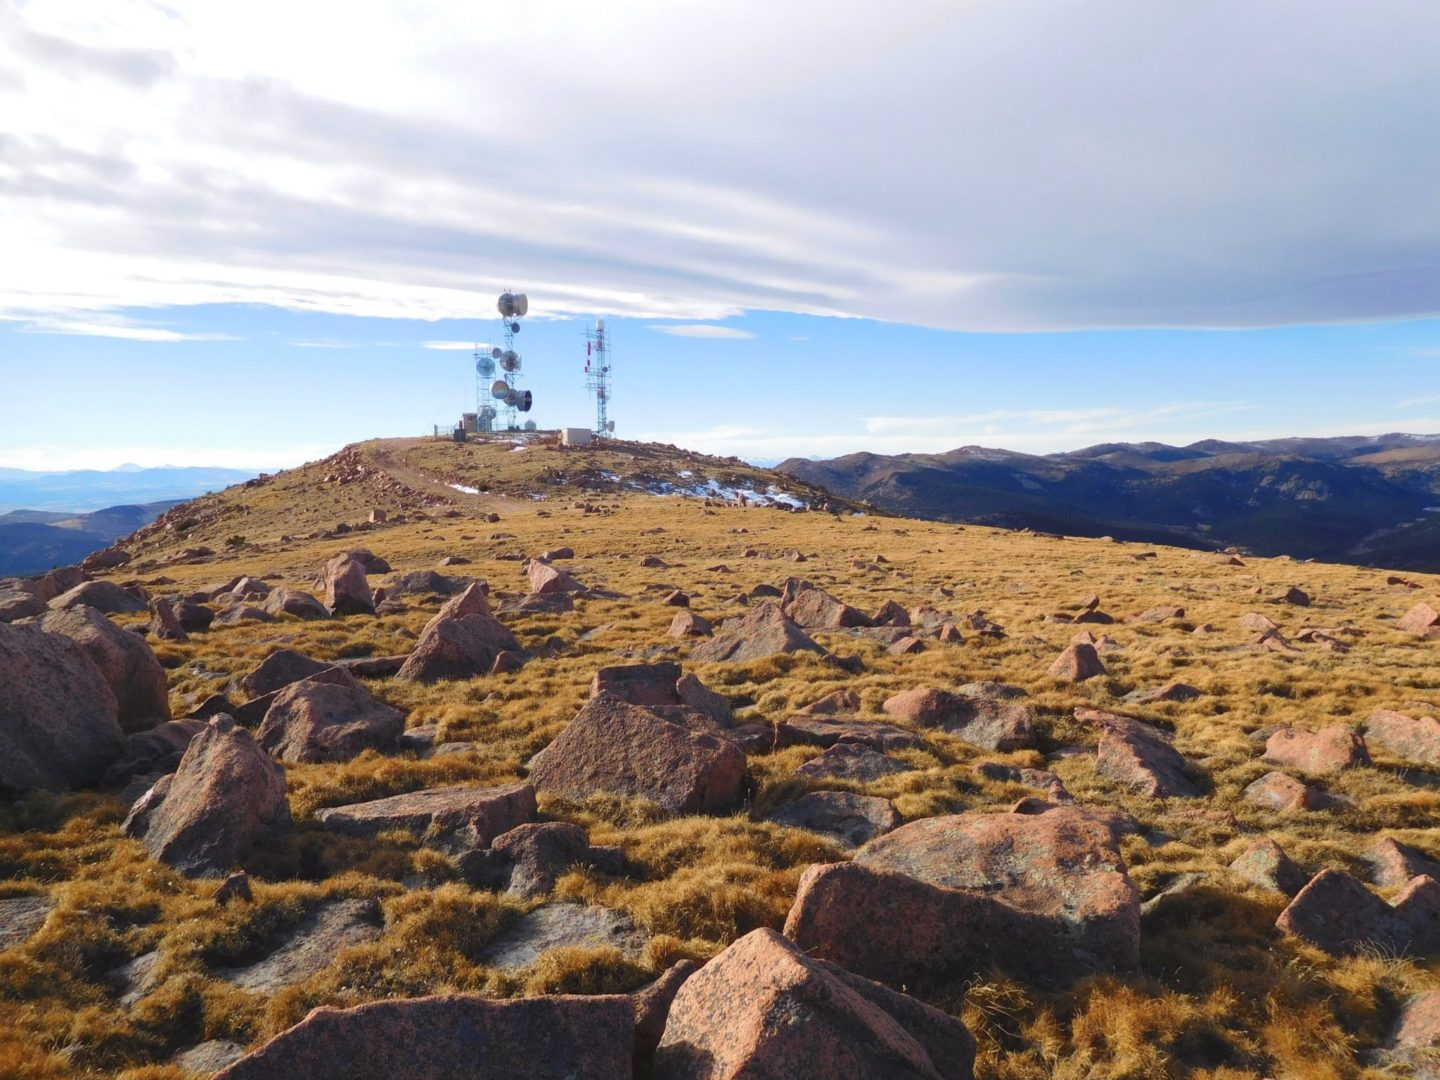 Repeater on Almagre Mountain